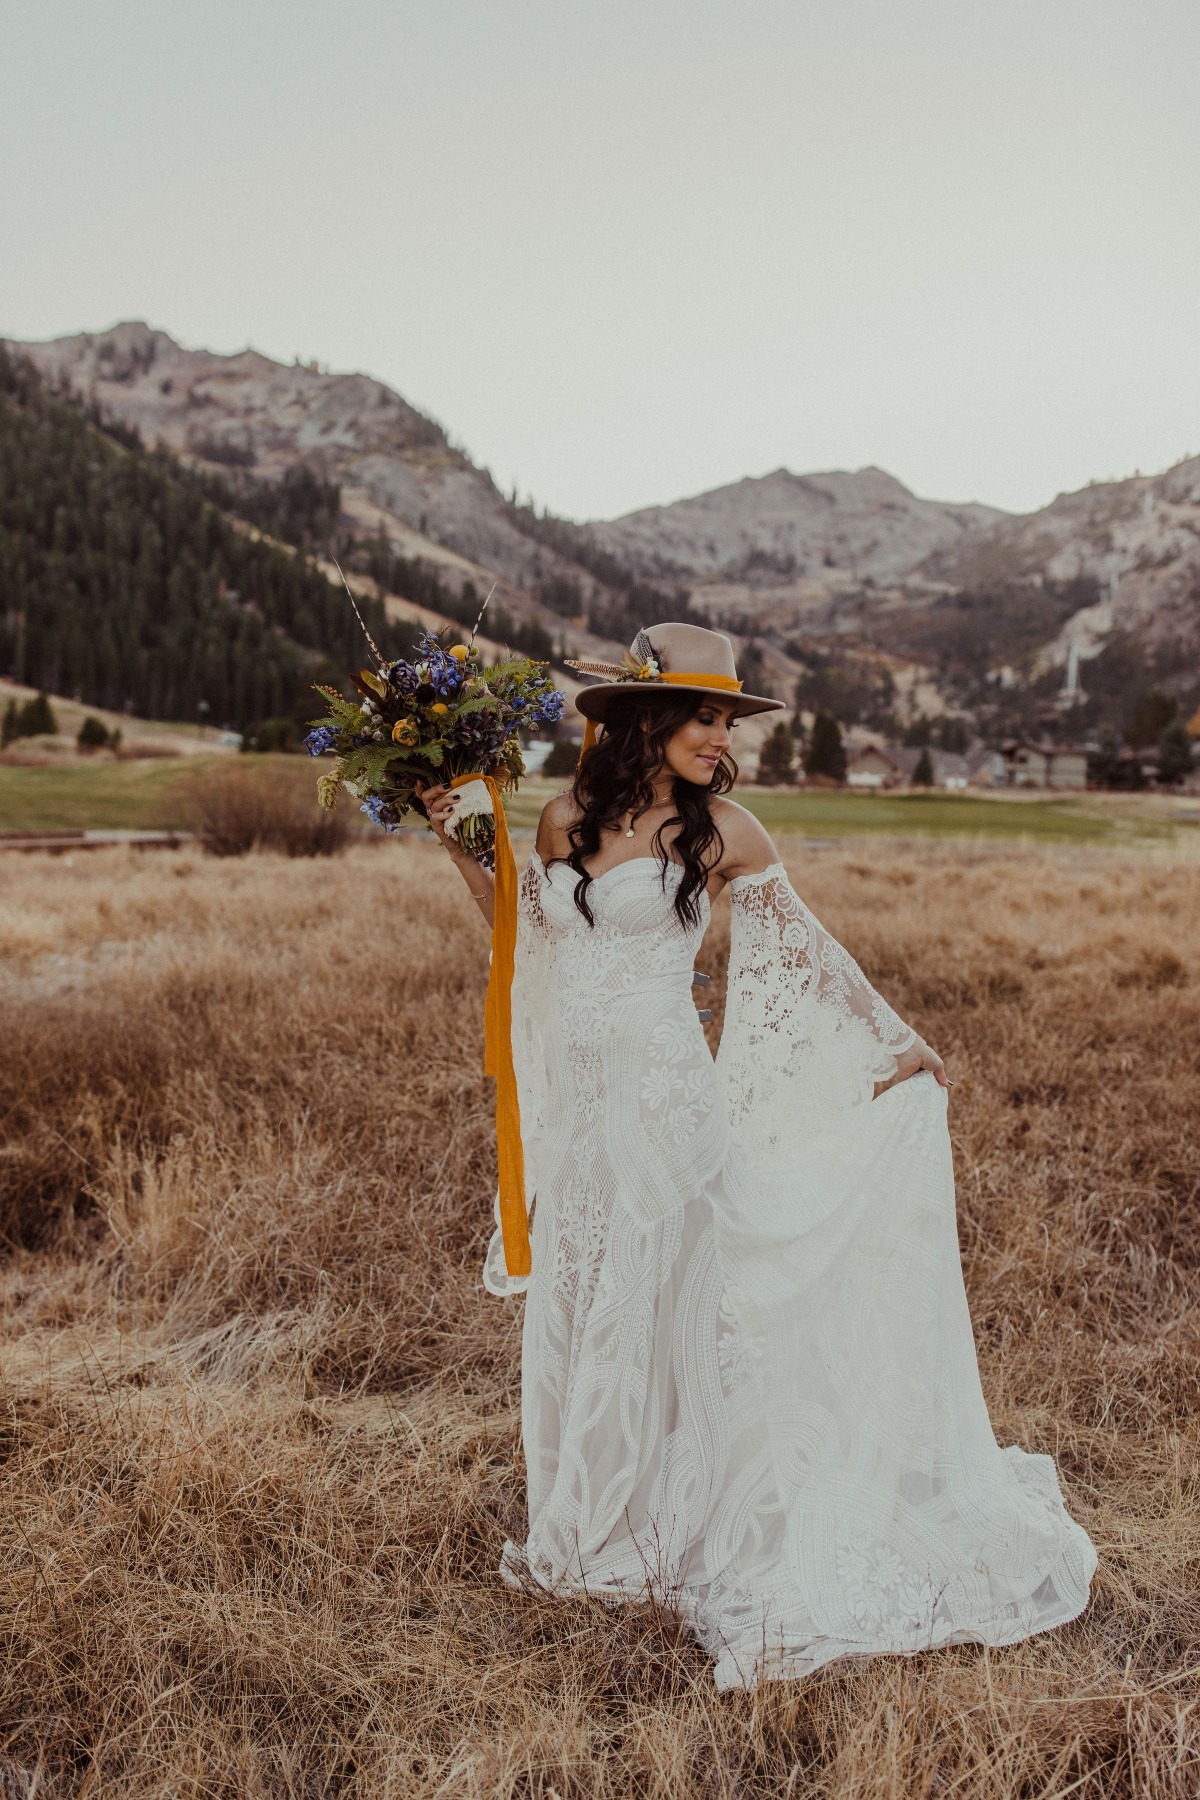 The Bachelorette Becca Kufrin & Garrett Yrigoyen Wedding Inspiration